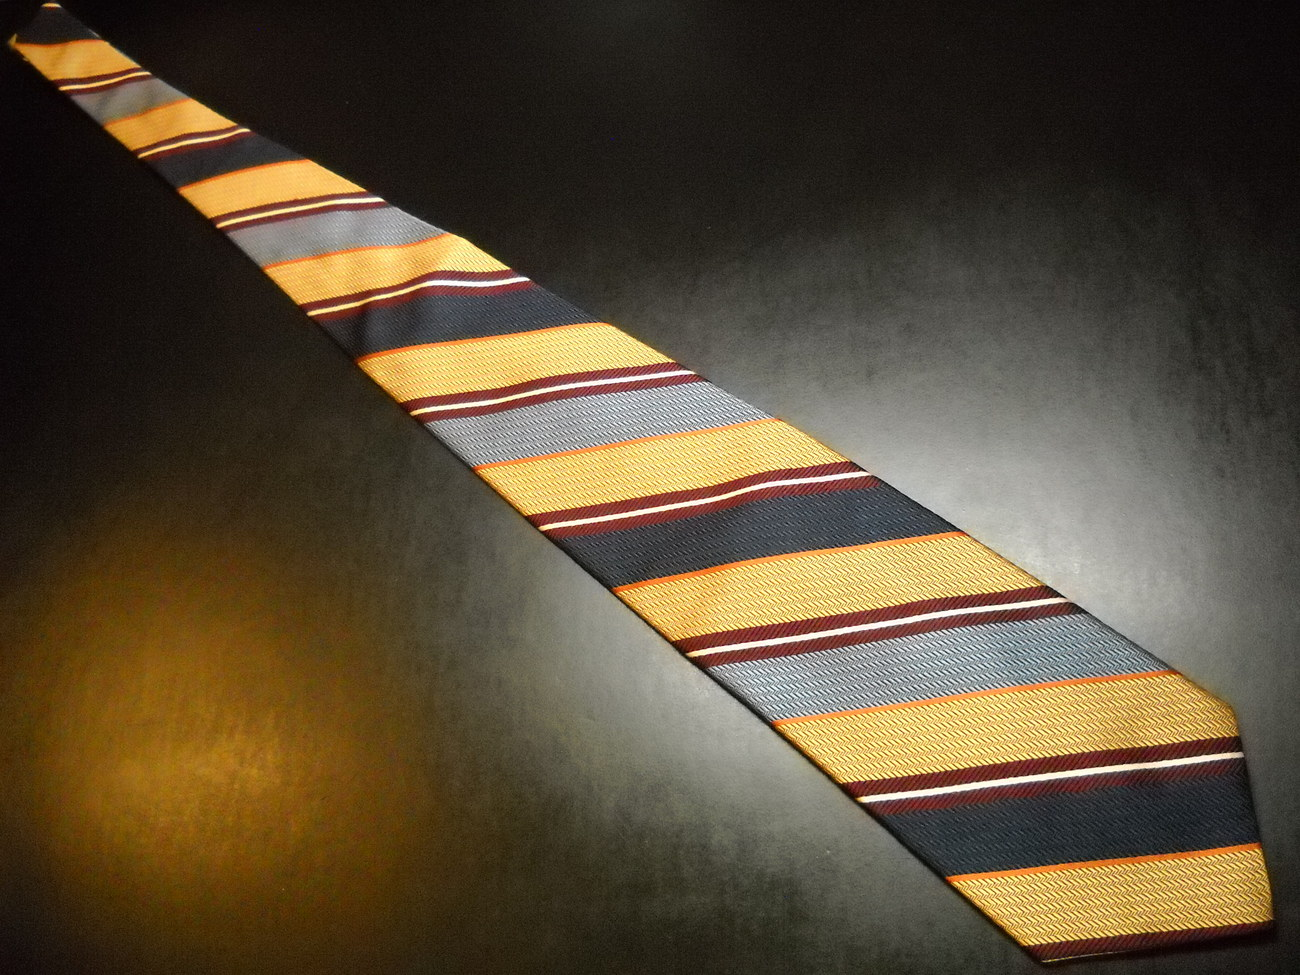 Brooks Brothers Makers Neck Tie Diagonal Stripes Golds Blues Silk Woven in Italy